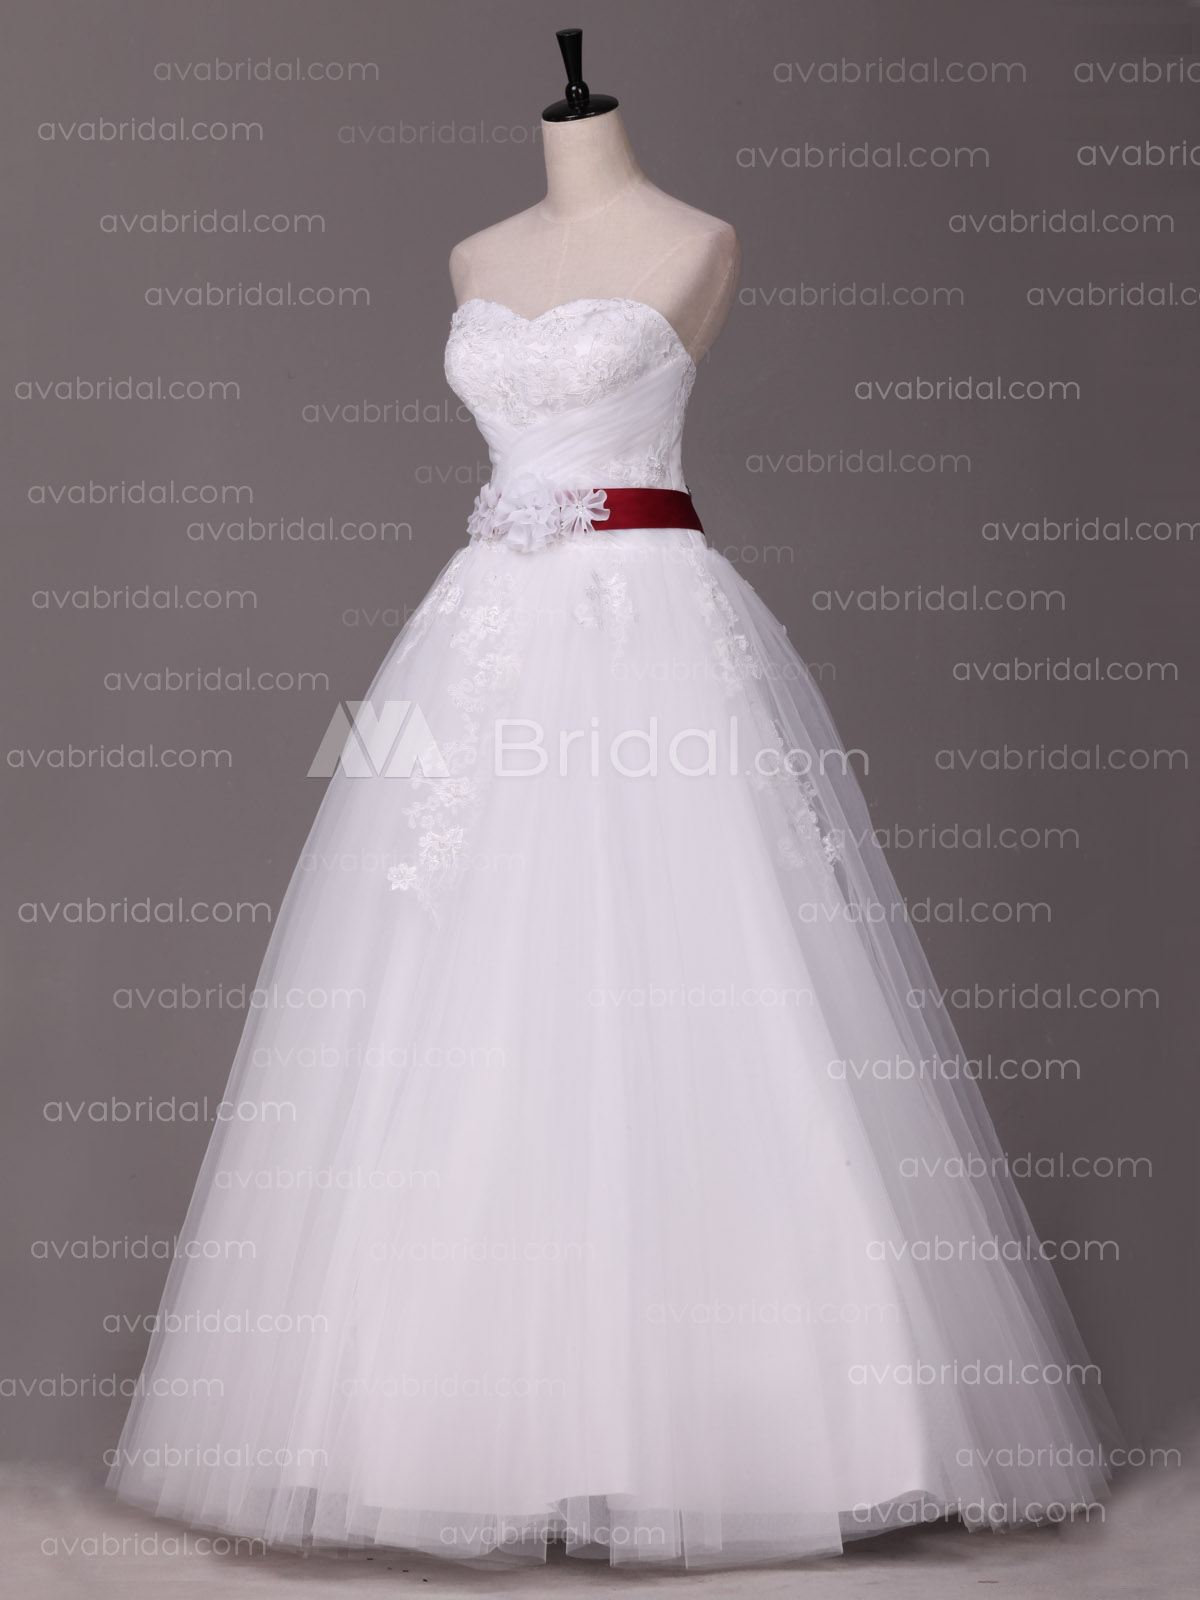 Romantic Fairytale Wedding Dress Melody